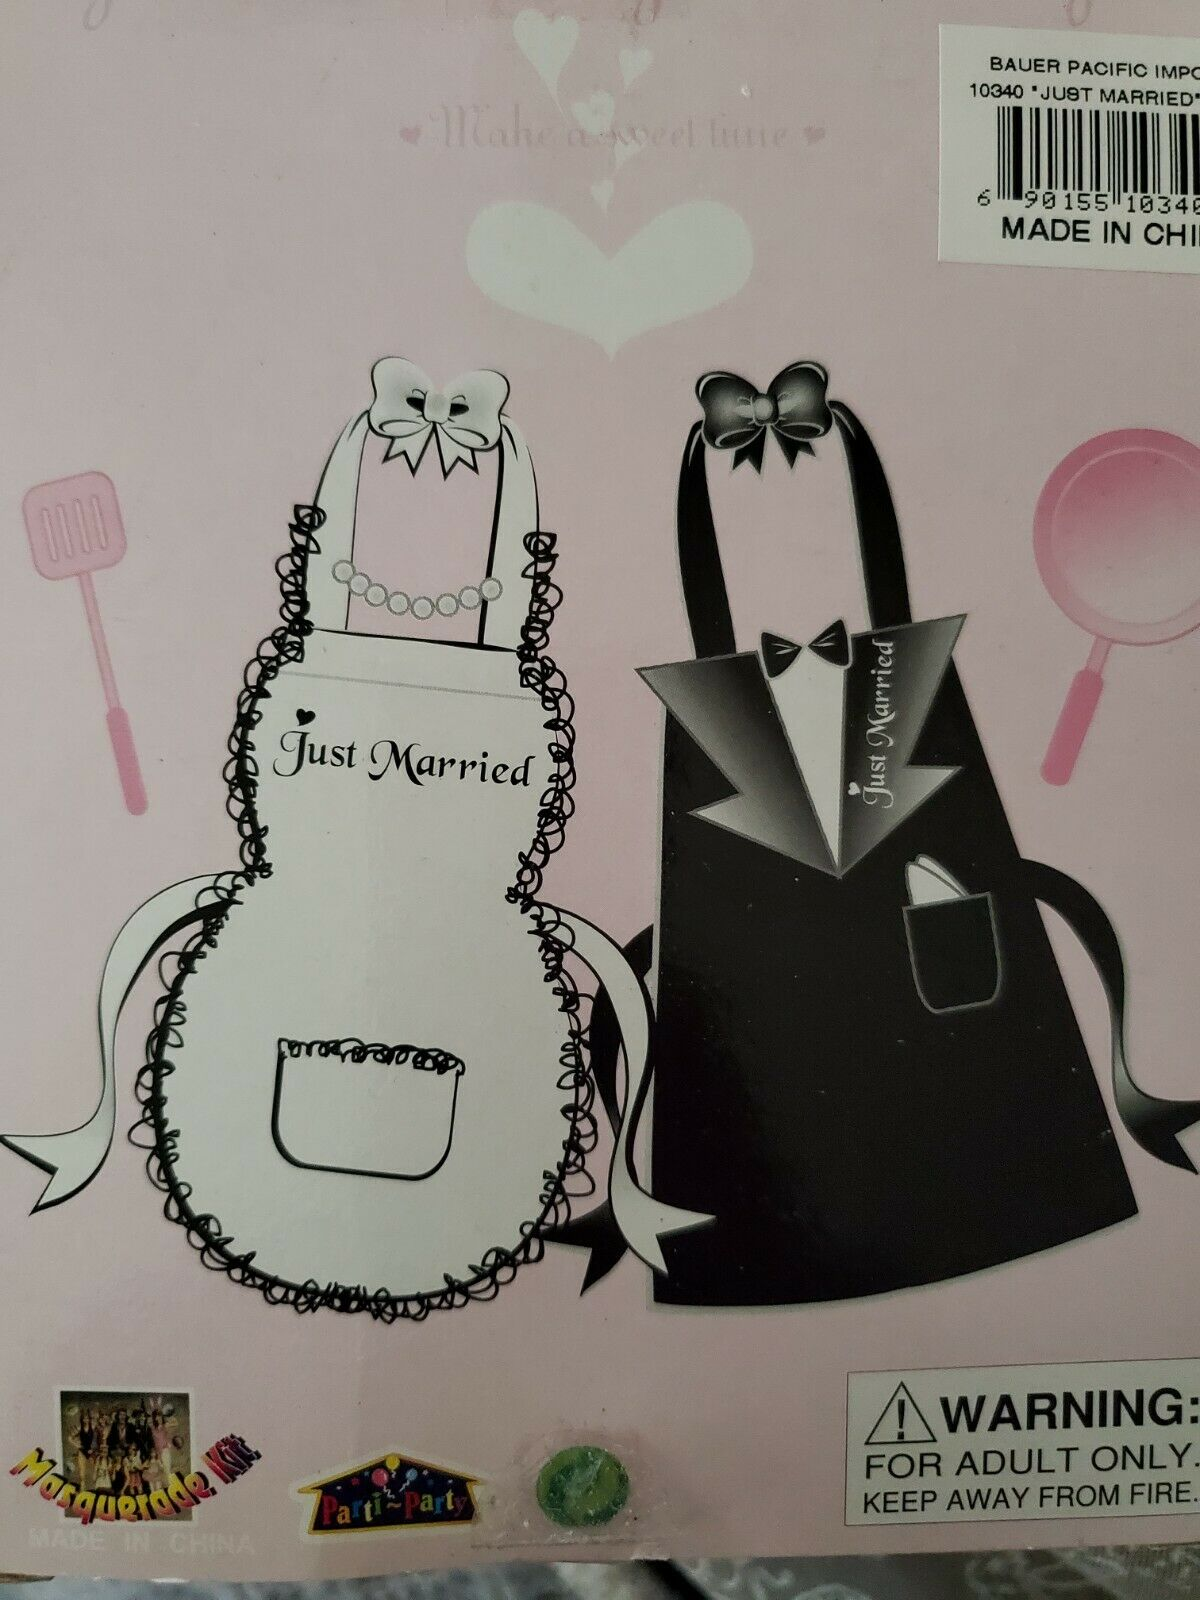 1 Just Married Apron, White Bride Gown Or Black Tuxedo, Costume Party, Newly wed